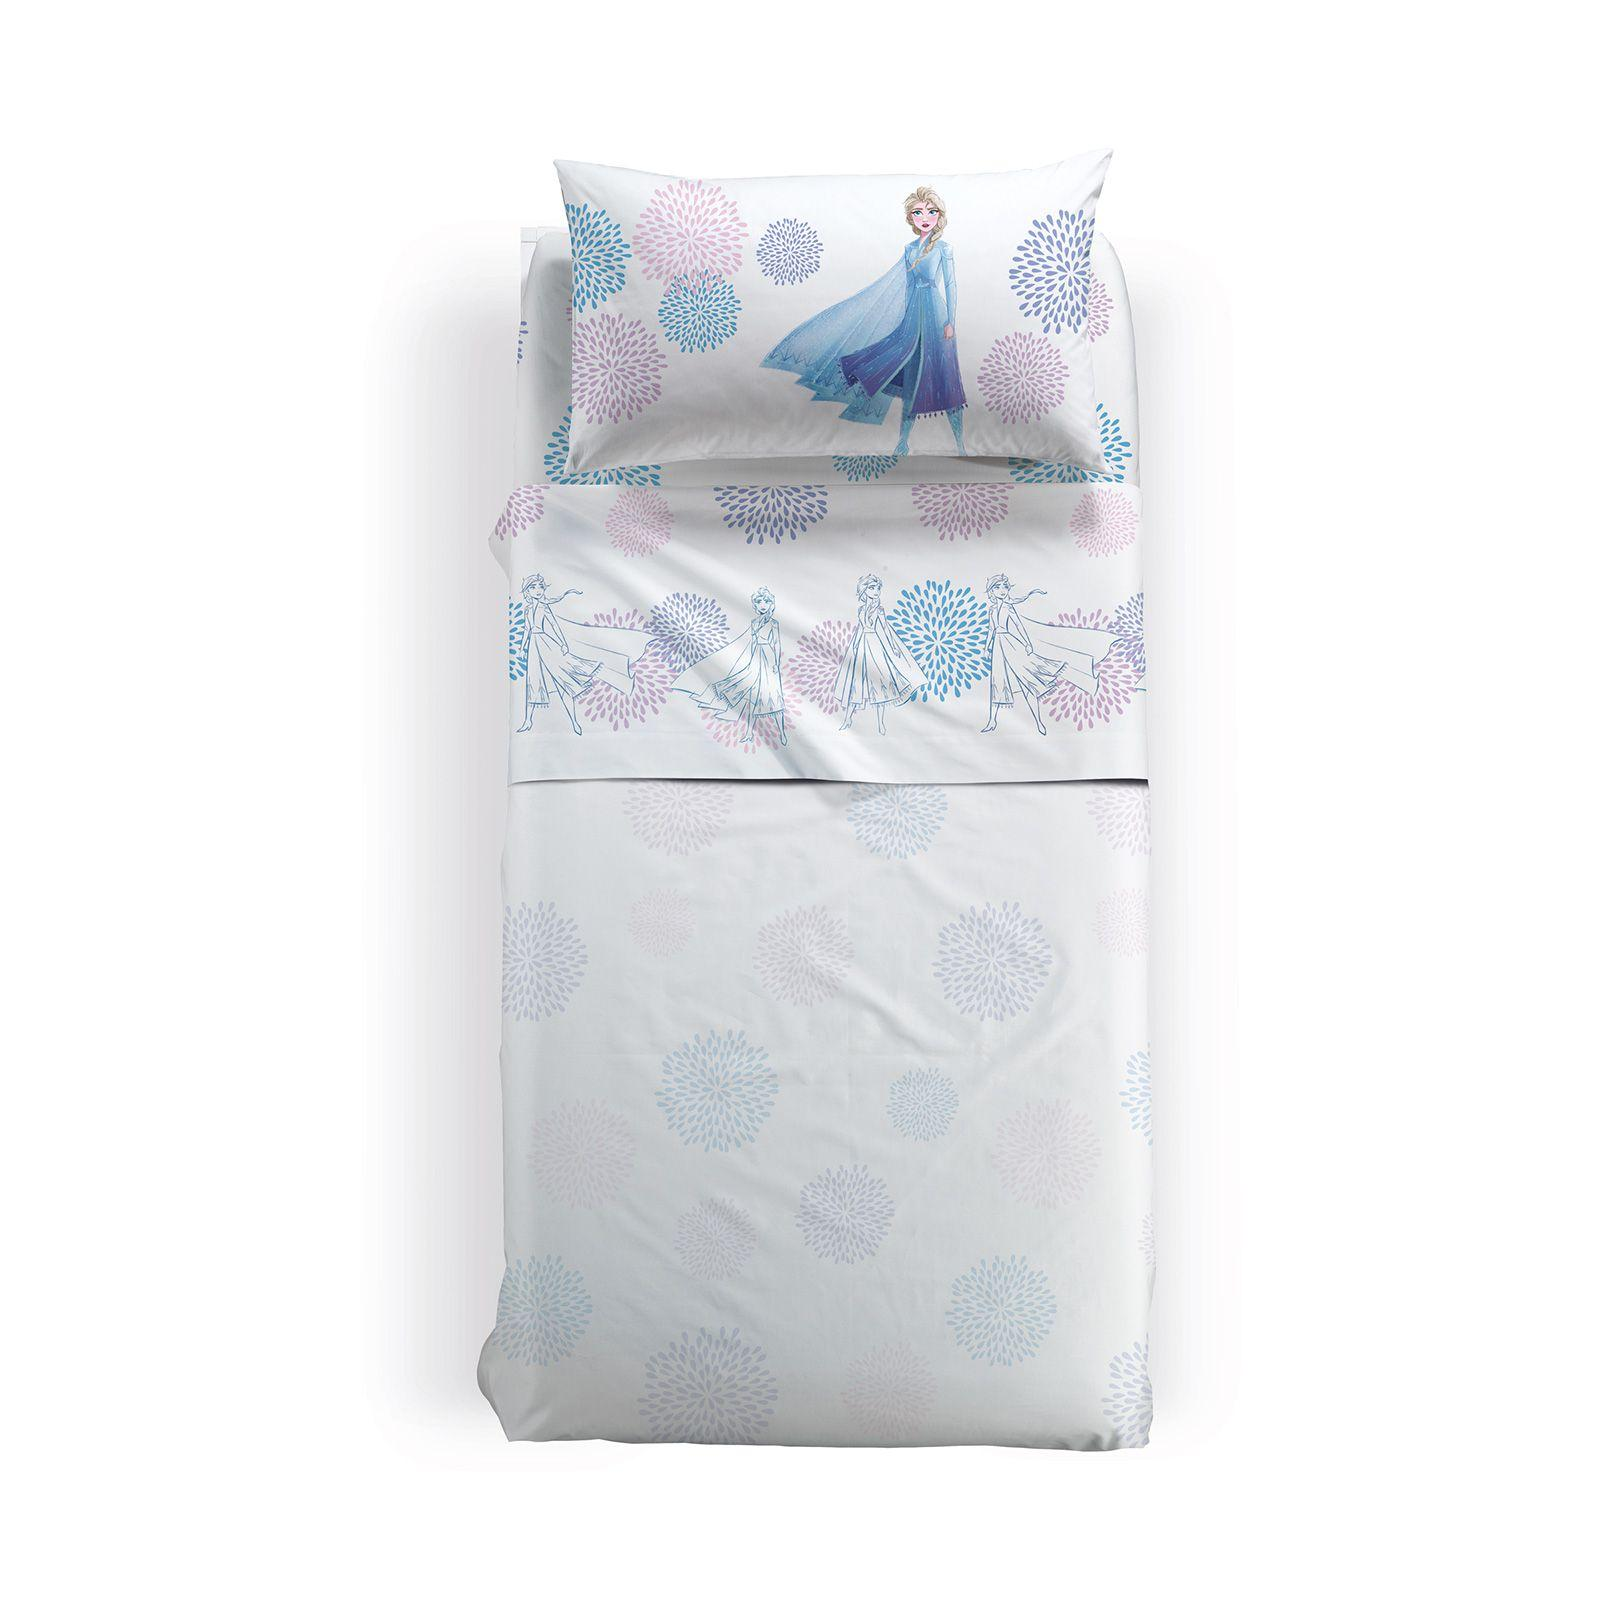 Lenzuola Matrimoniali Disney.Frozen Sheet Set Elsa Blu Caleffi Square And Half Disney